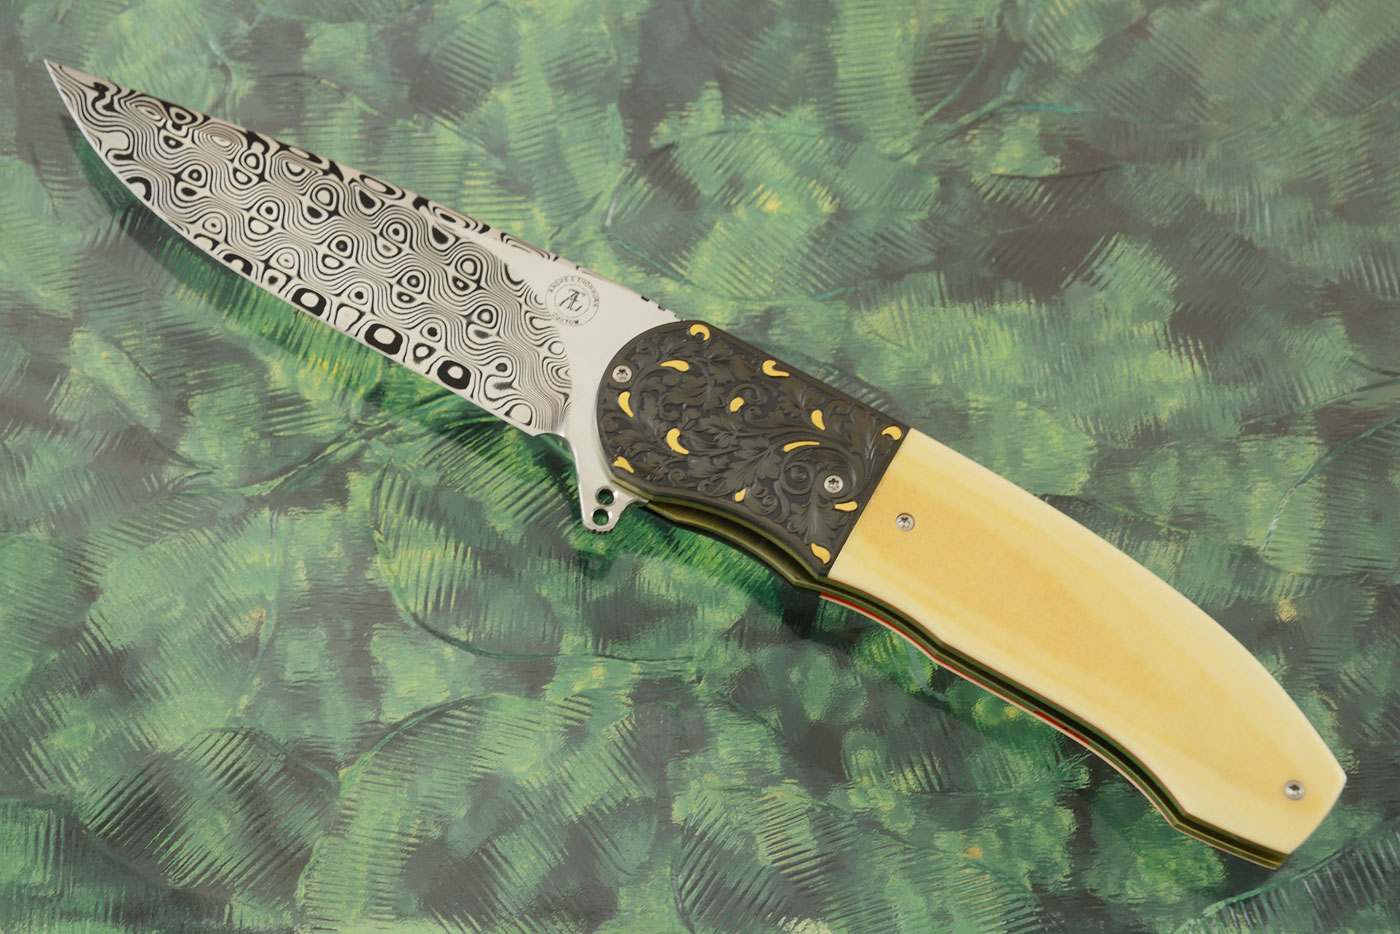 L48 Flipper with Antique Westinghouse Micarta, Damascus, and Engraved Zirconium with Gold Inlays (Ceramic IKBS)